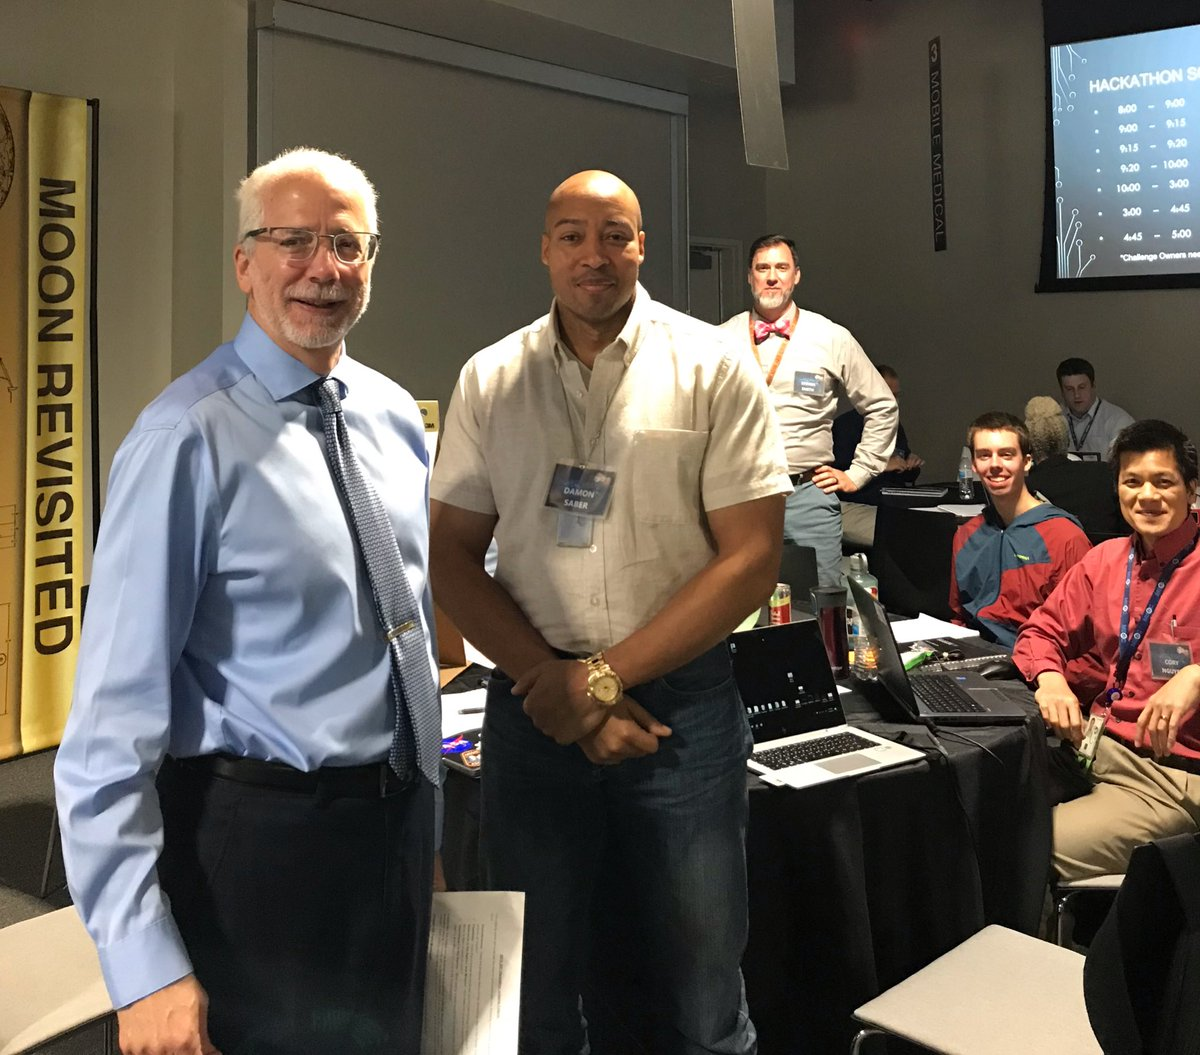 Innovation and team work on full display at #JSCHackathon2019. Sponsored by @NASA_Johnson Emerge ERG. Who will be the winner? @DirectorMarkG looks ready to judge.